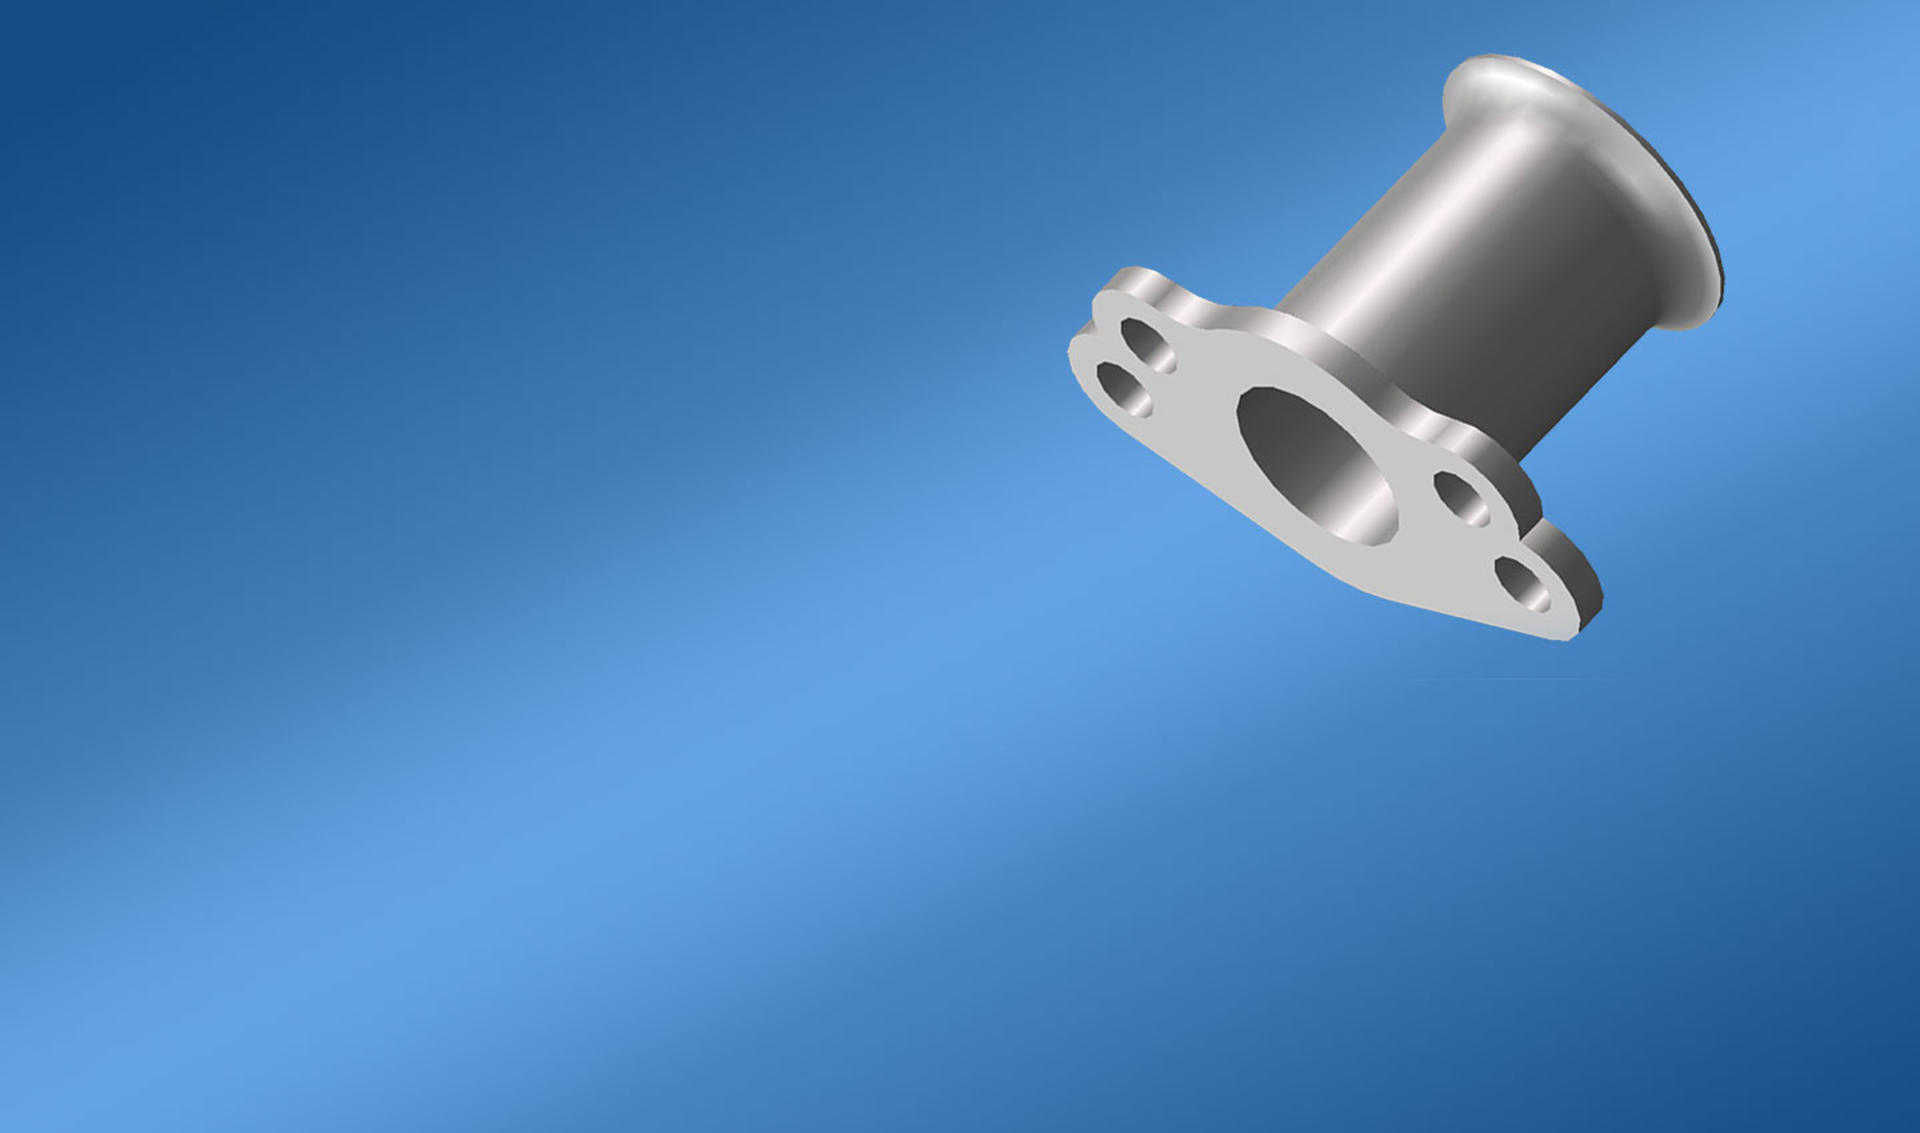 Beistel Machining, Inc. uses GibbsCAM MTM to machine complex parts and VoluMill to speed up machining time.